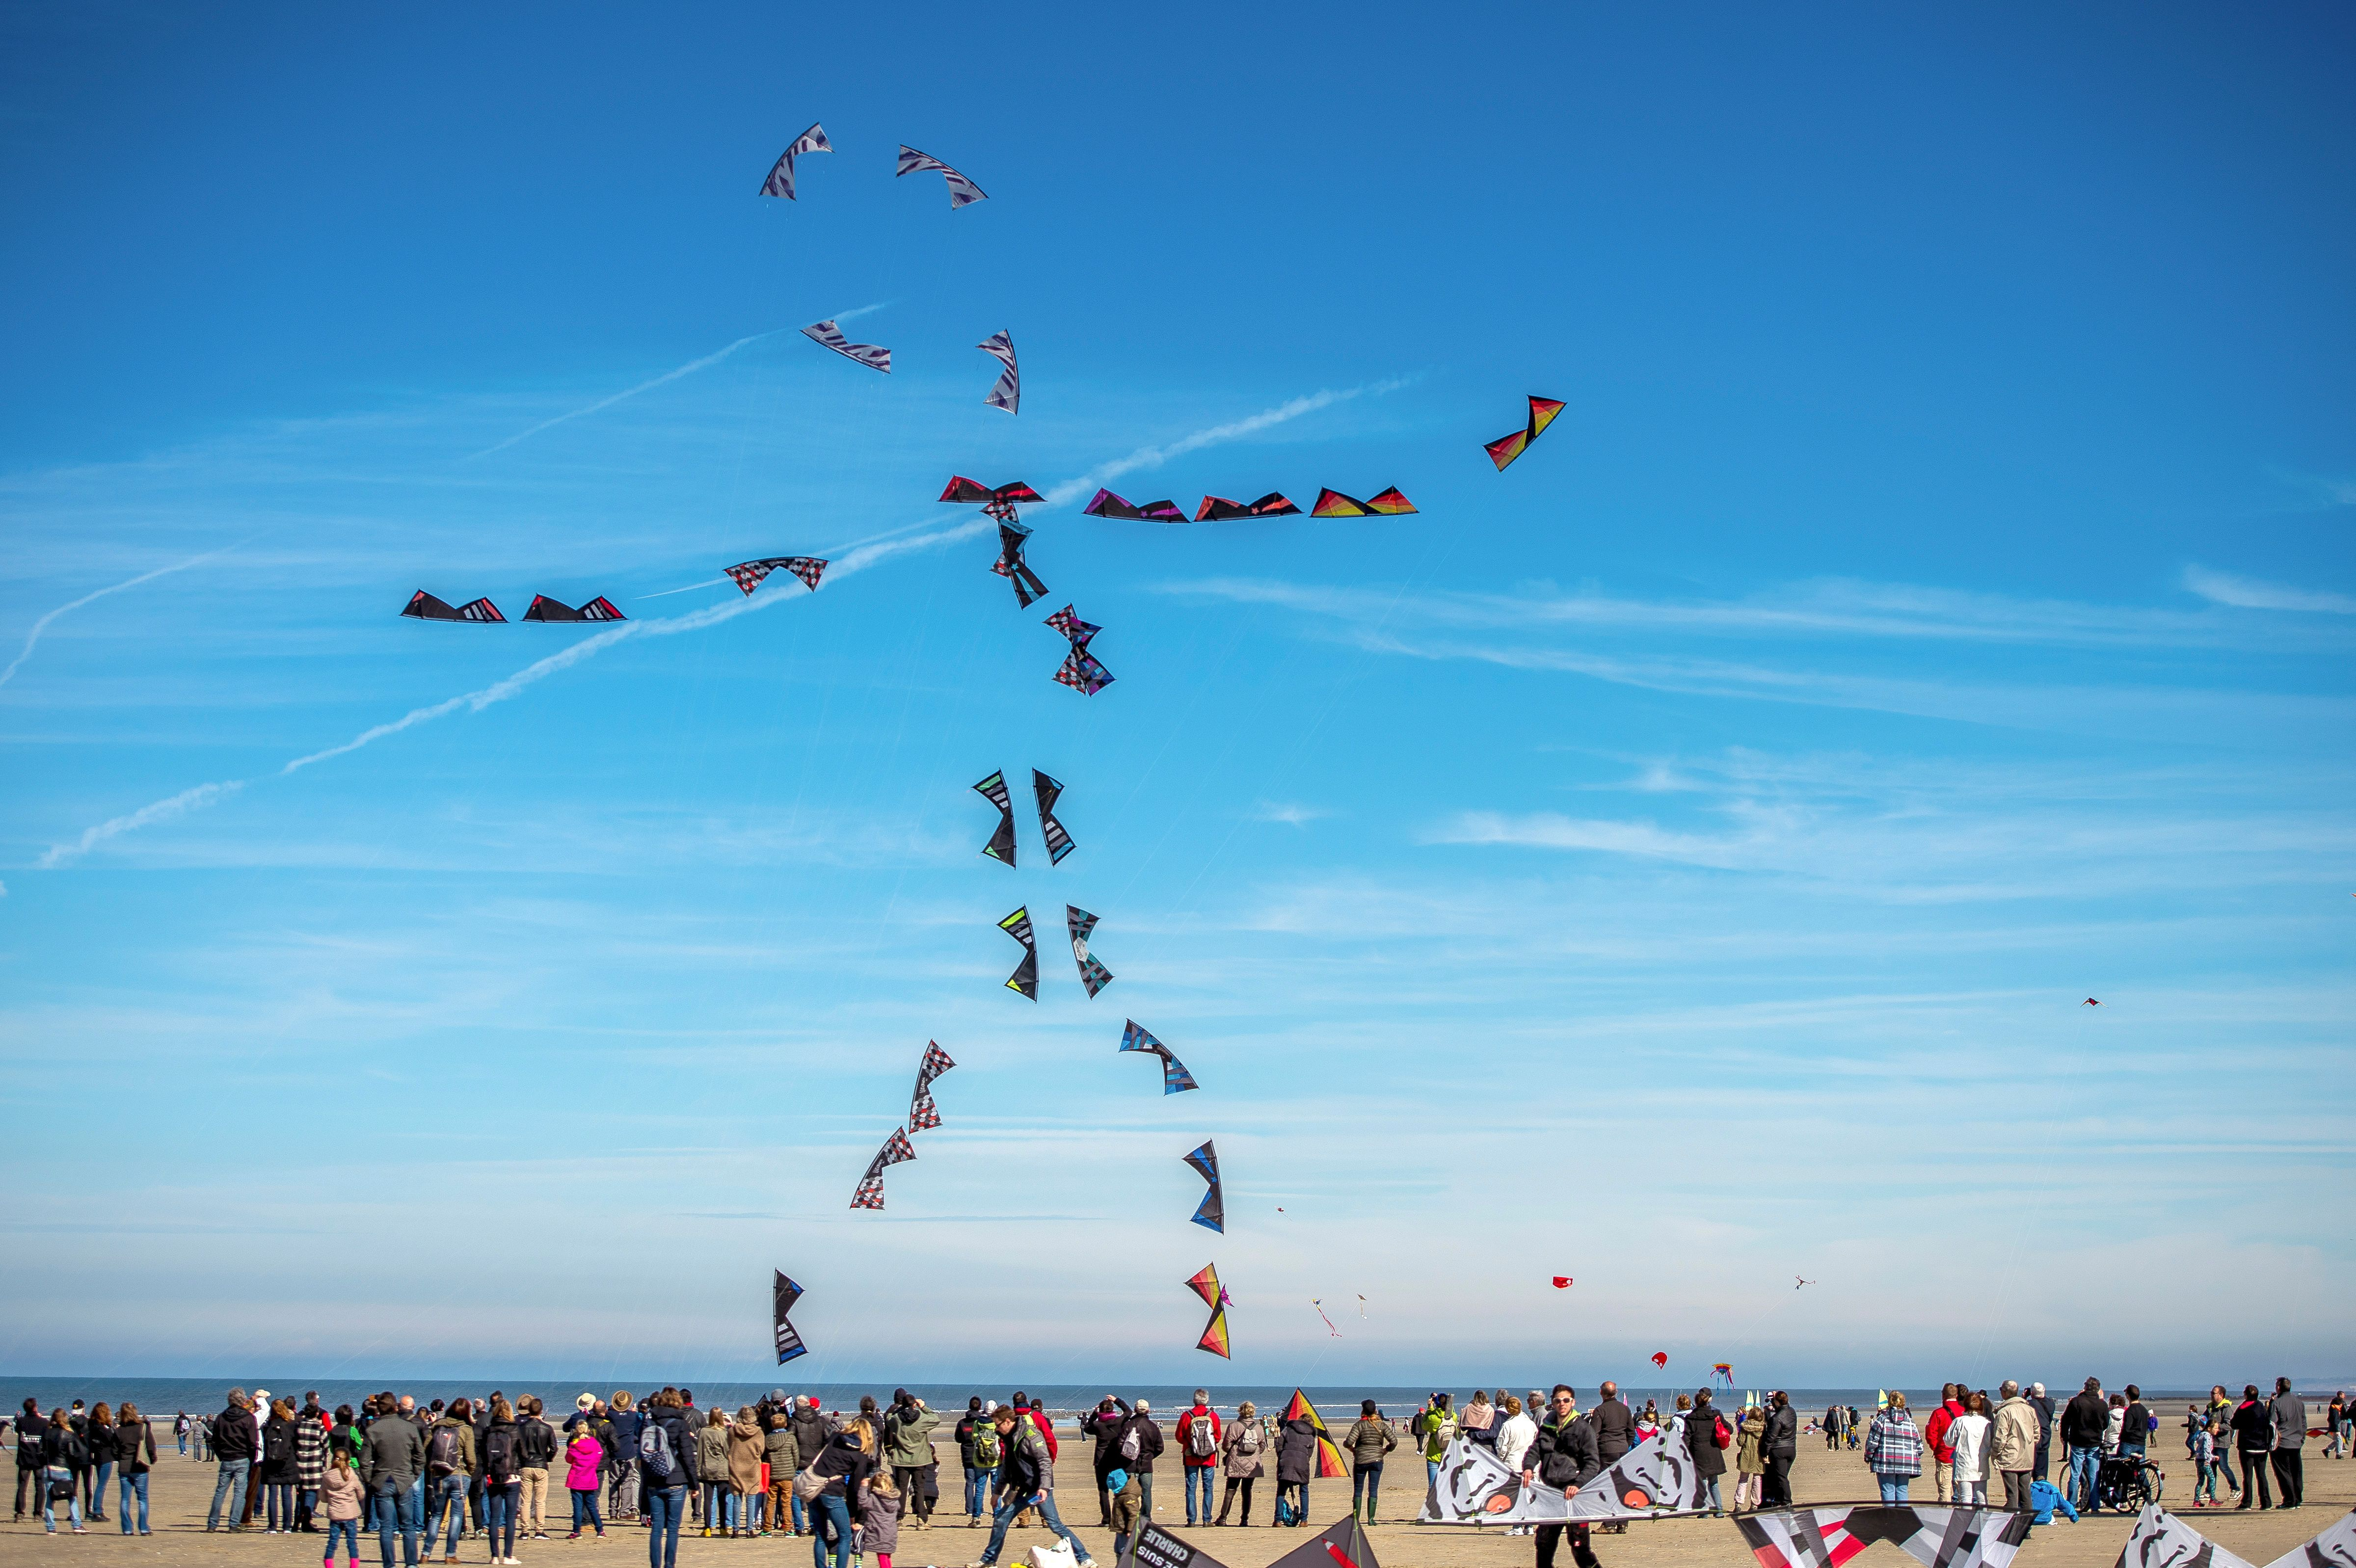 People fly kites during the 30th International Kite Festival in Berck-sur-Mer, northern France on April 12. (Philippe Huguen/AFP/Getty Images)